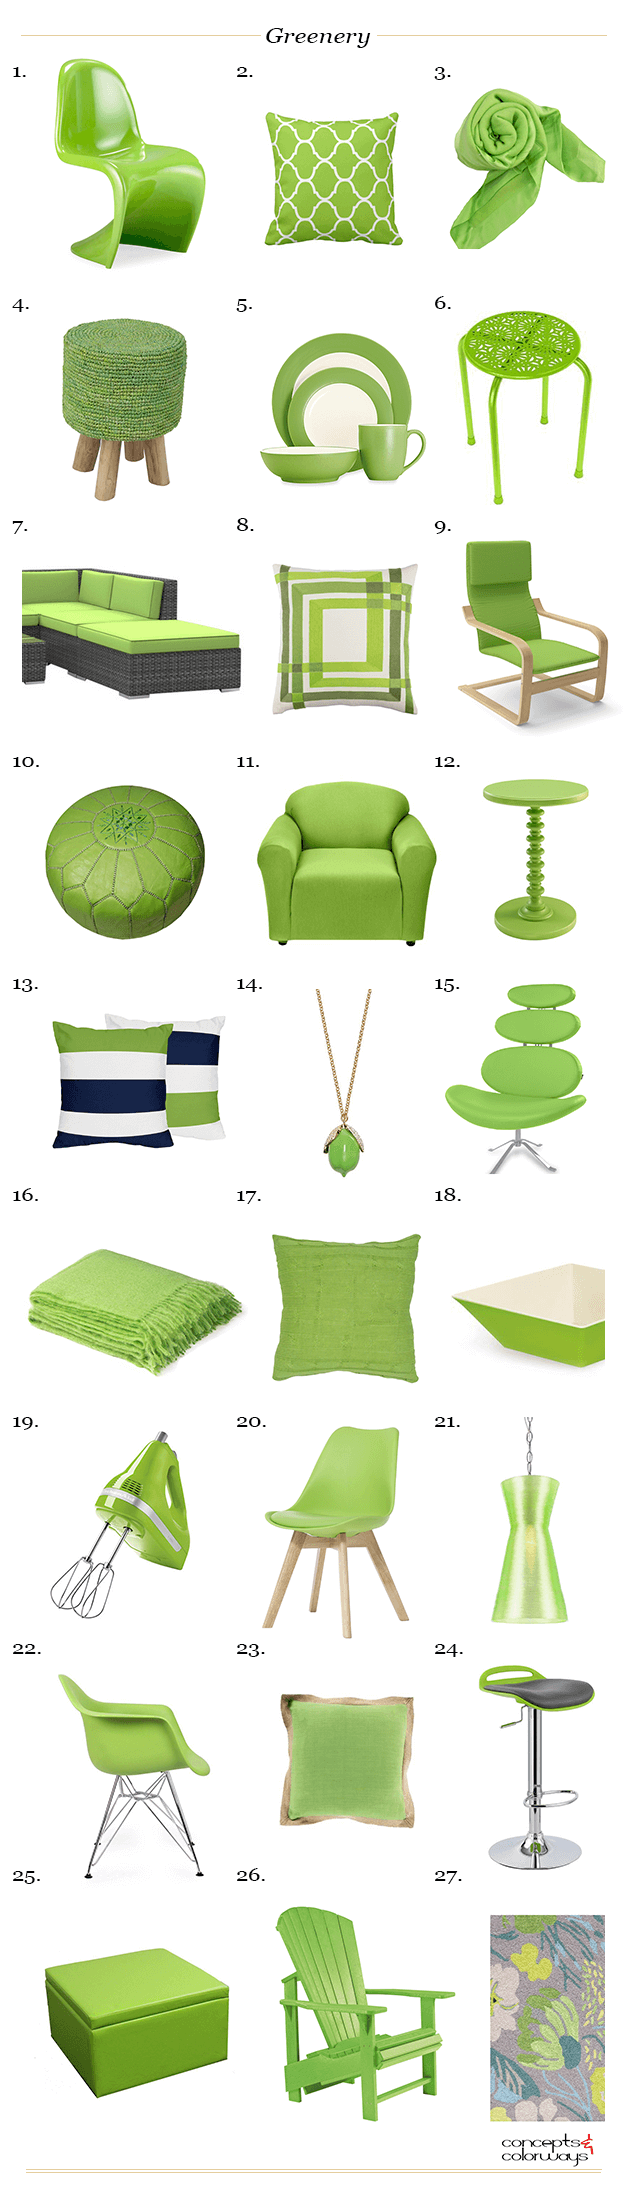 pantone greenery interior product roundup